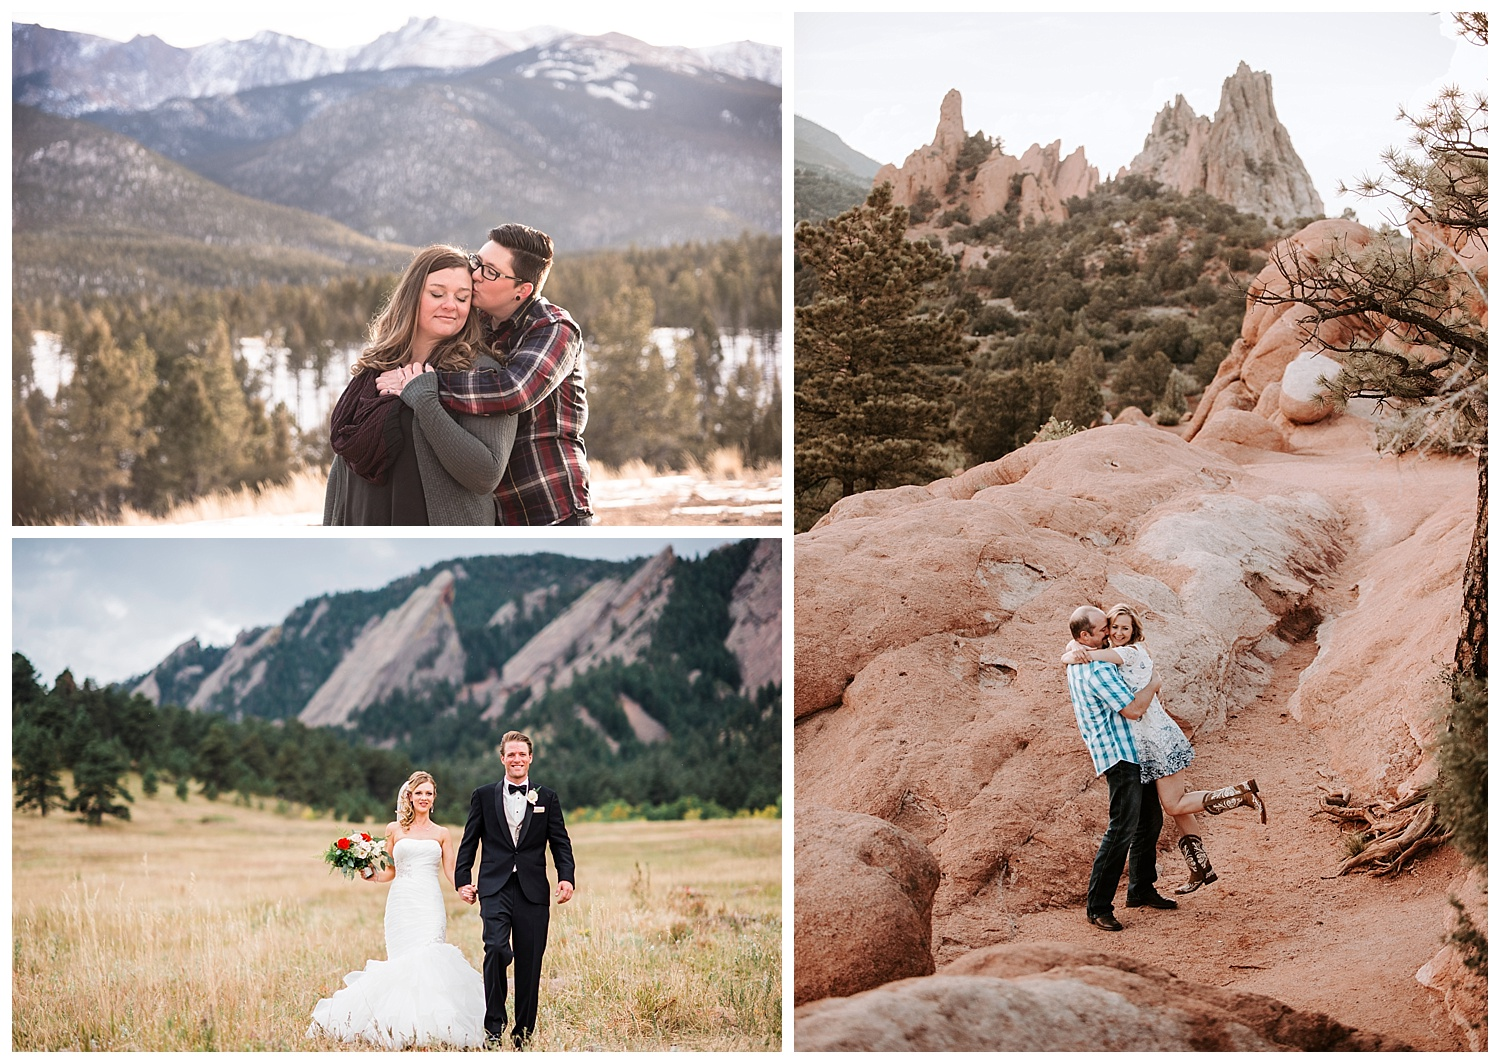 Mountain_Elopements_Apollo_Fields_Destination_Wedding_Photographers_Adventure_003.jpg